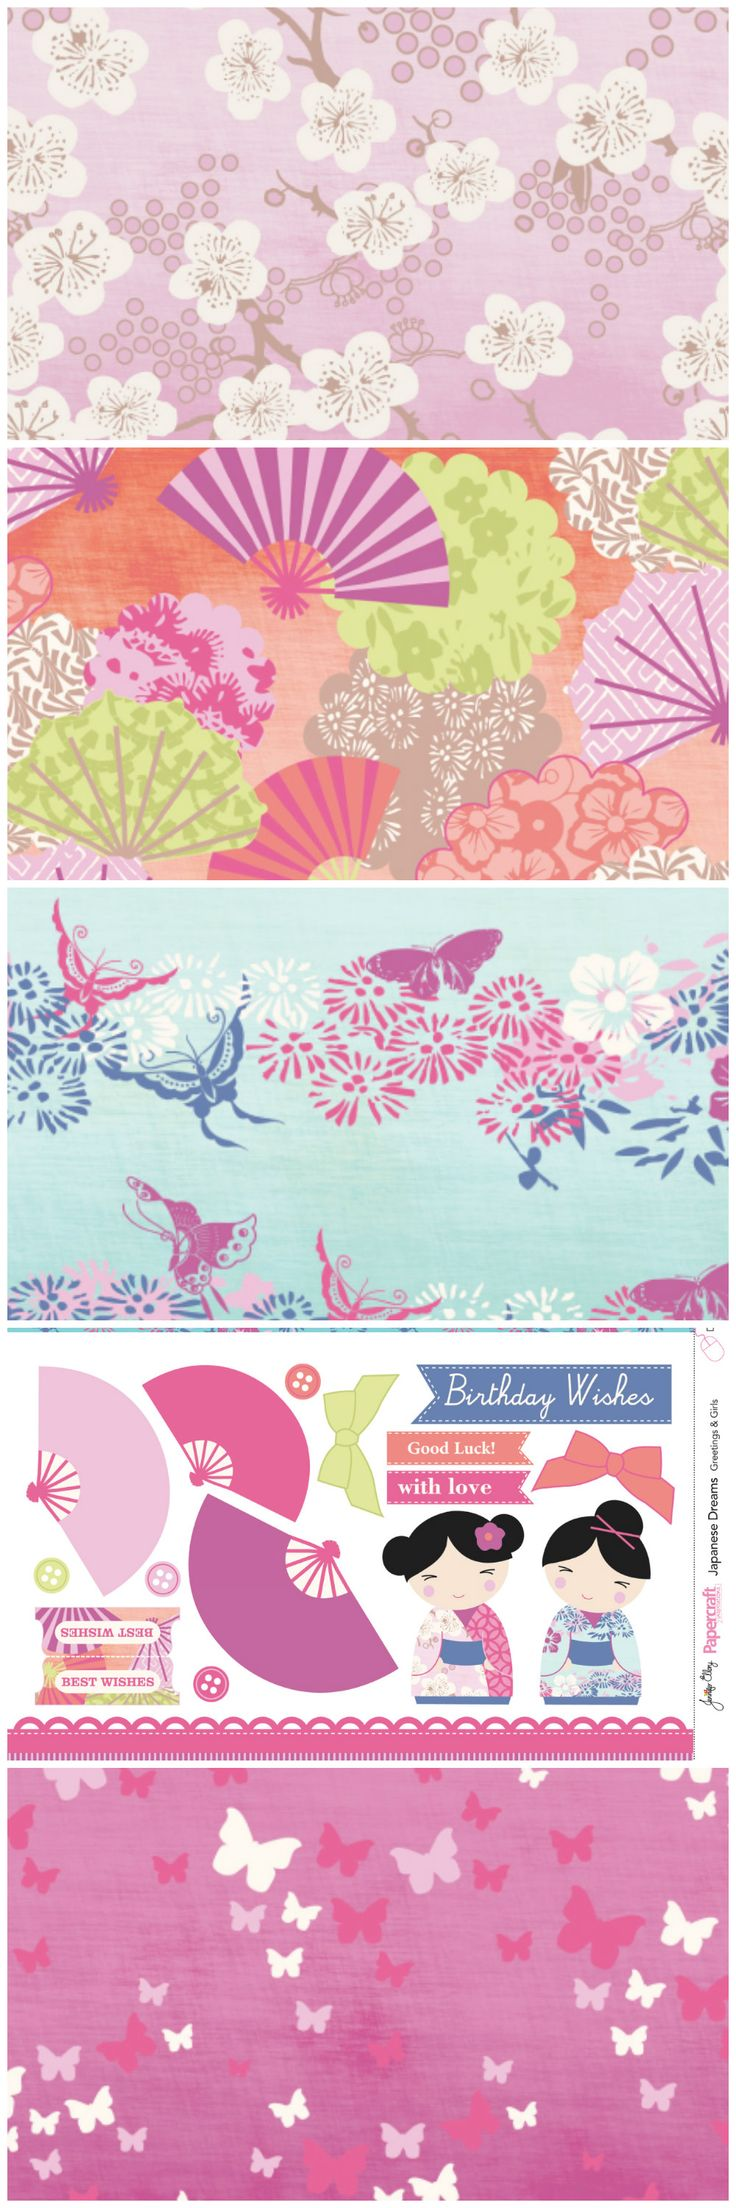 Find some Eastern inspiration with our gorgeous Japanese Dreams FREE digital papers! Think how gorgeous they'd look on your cards and scrapbooks!